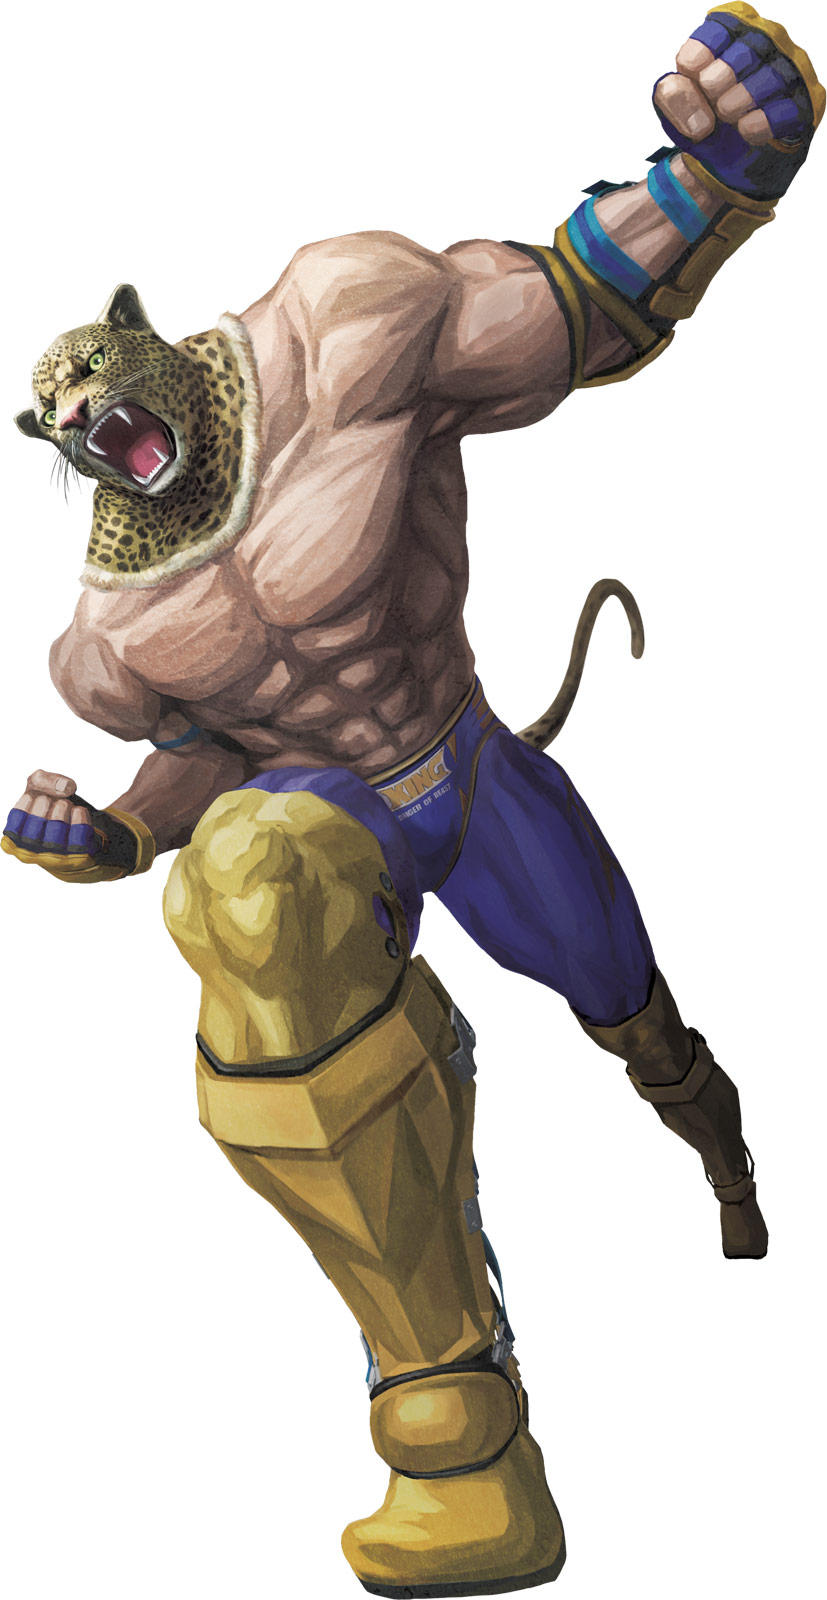 SFXT Street Fighter X Tekken Official Game Art King Character Render